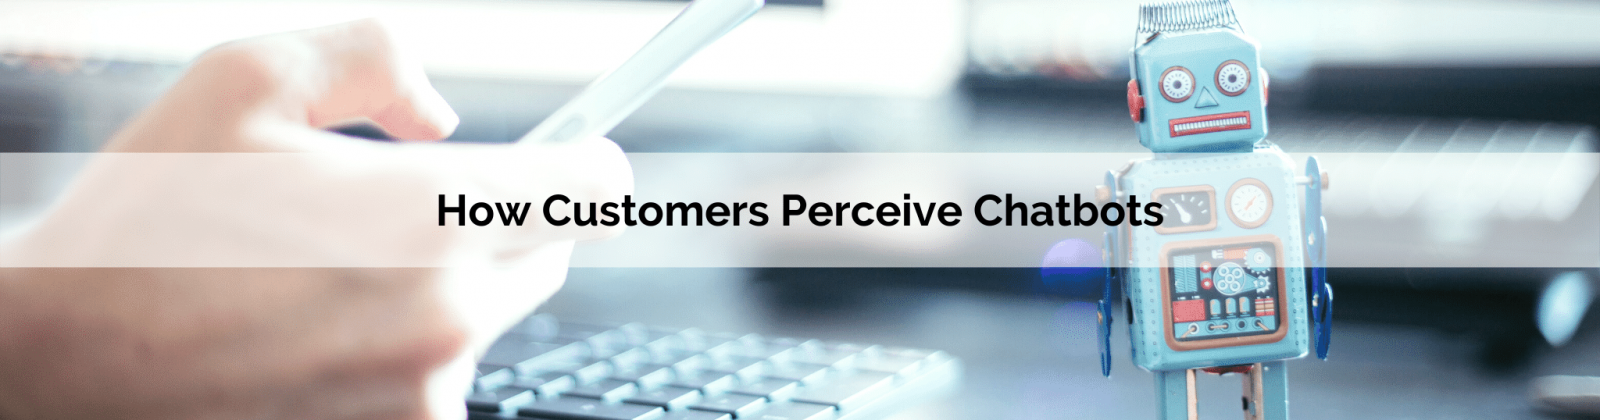 How customers perceive chatbots